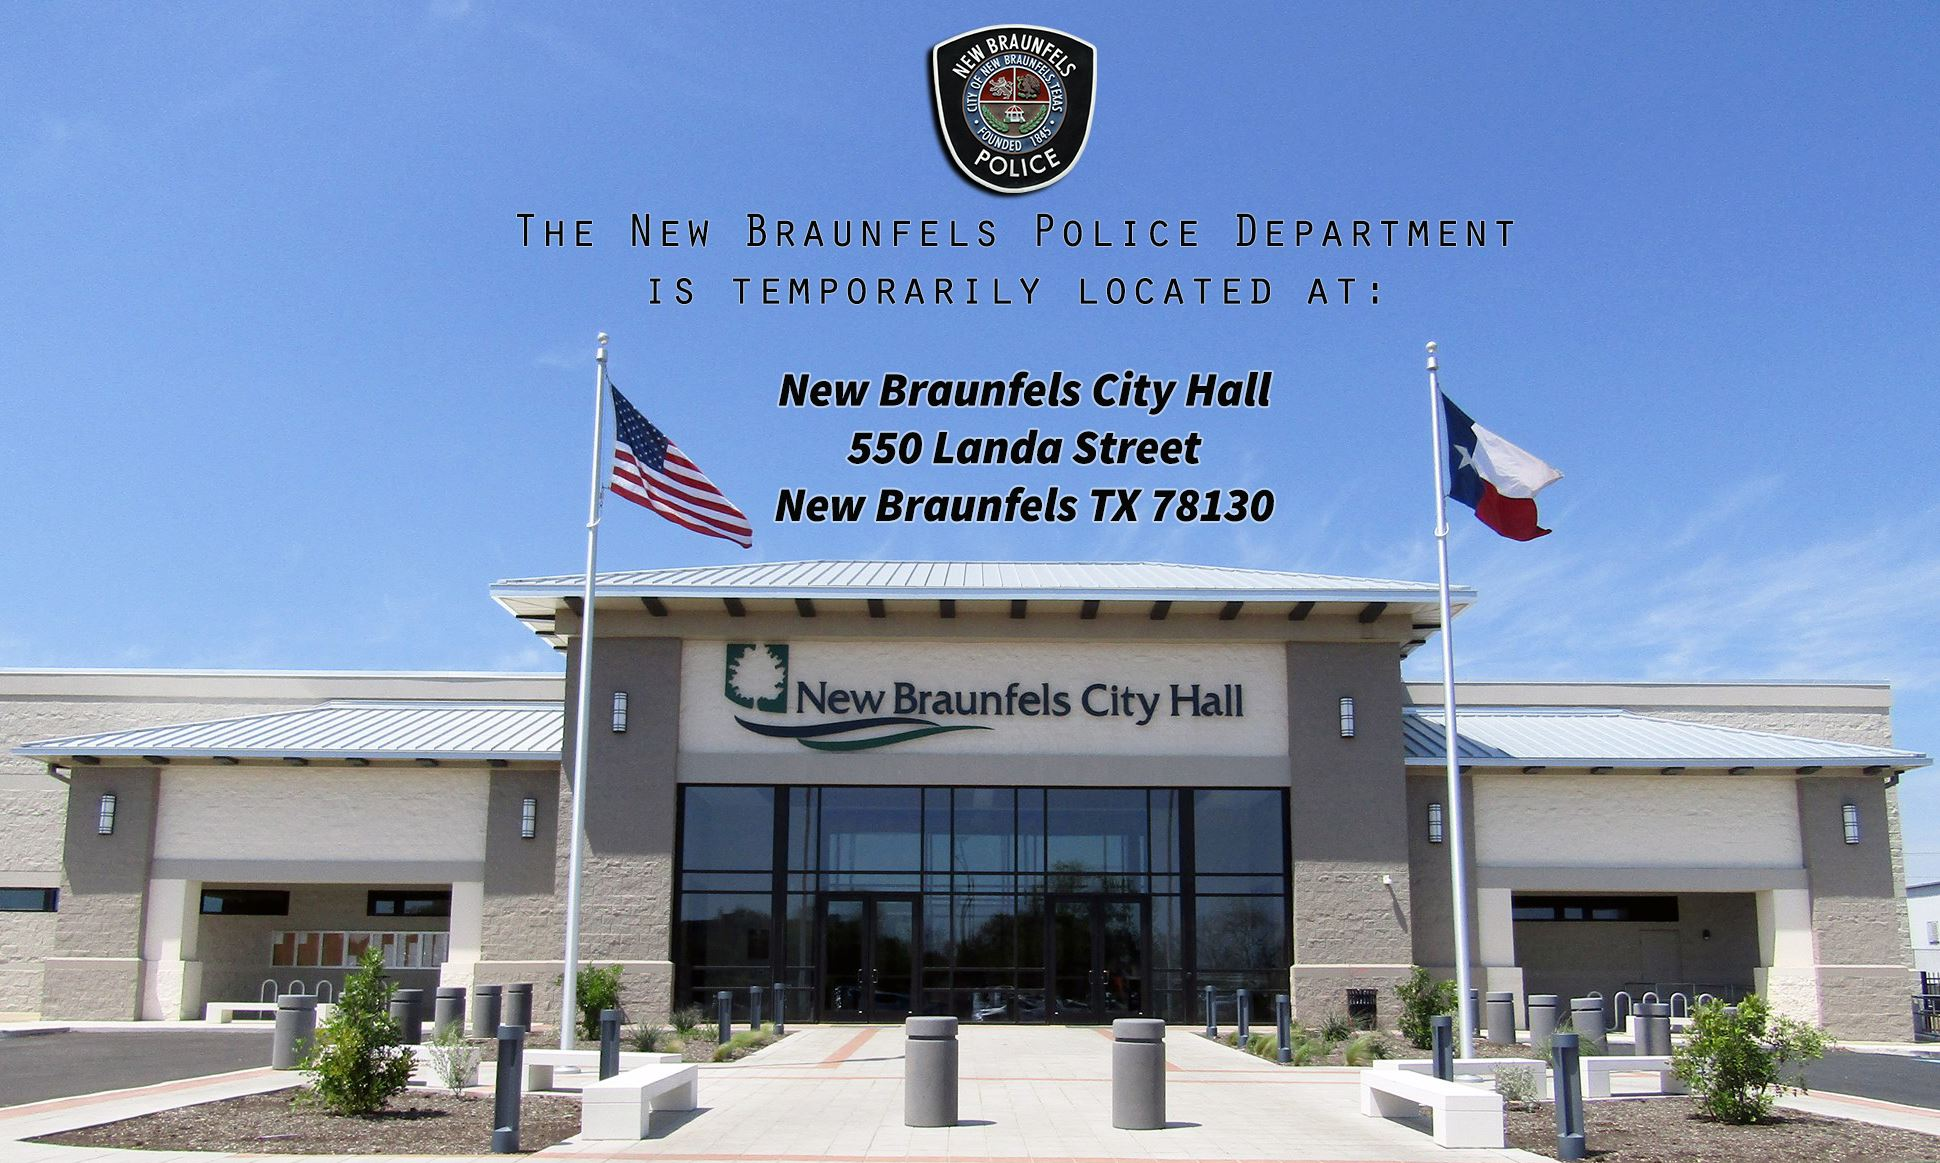 New Braunfels City Hall / NBPD 2